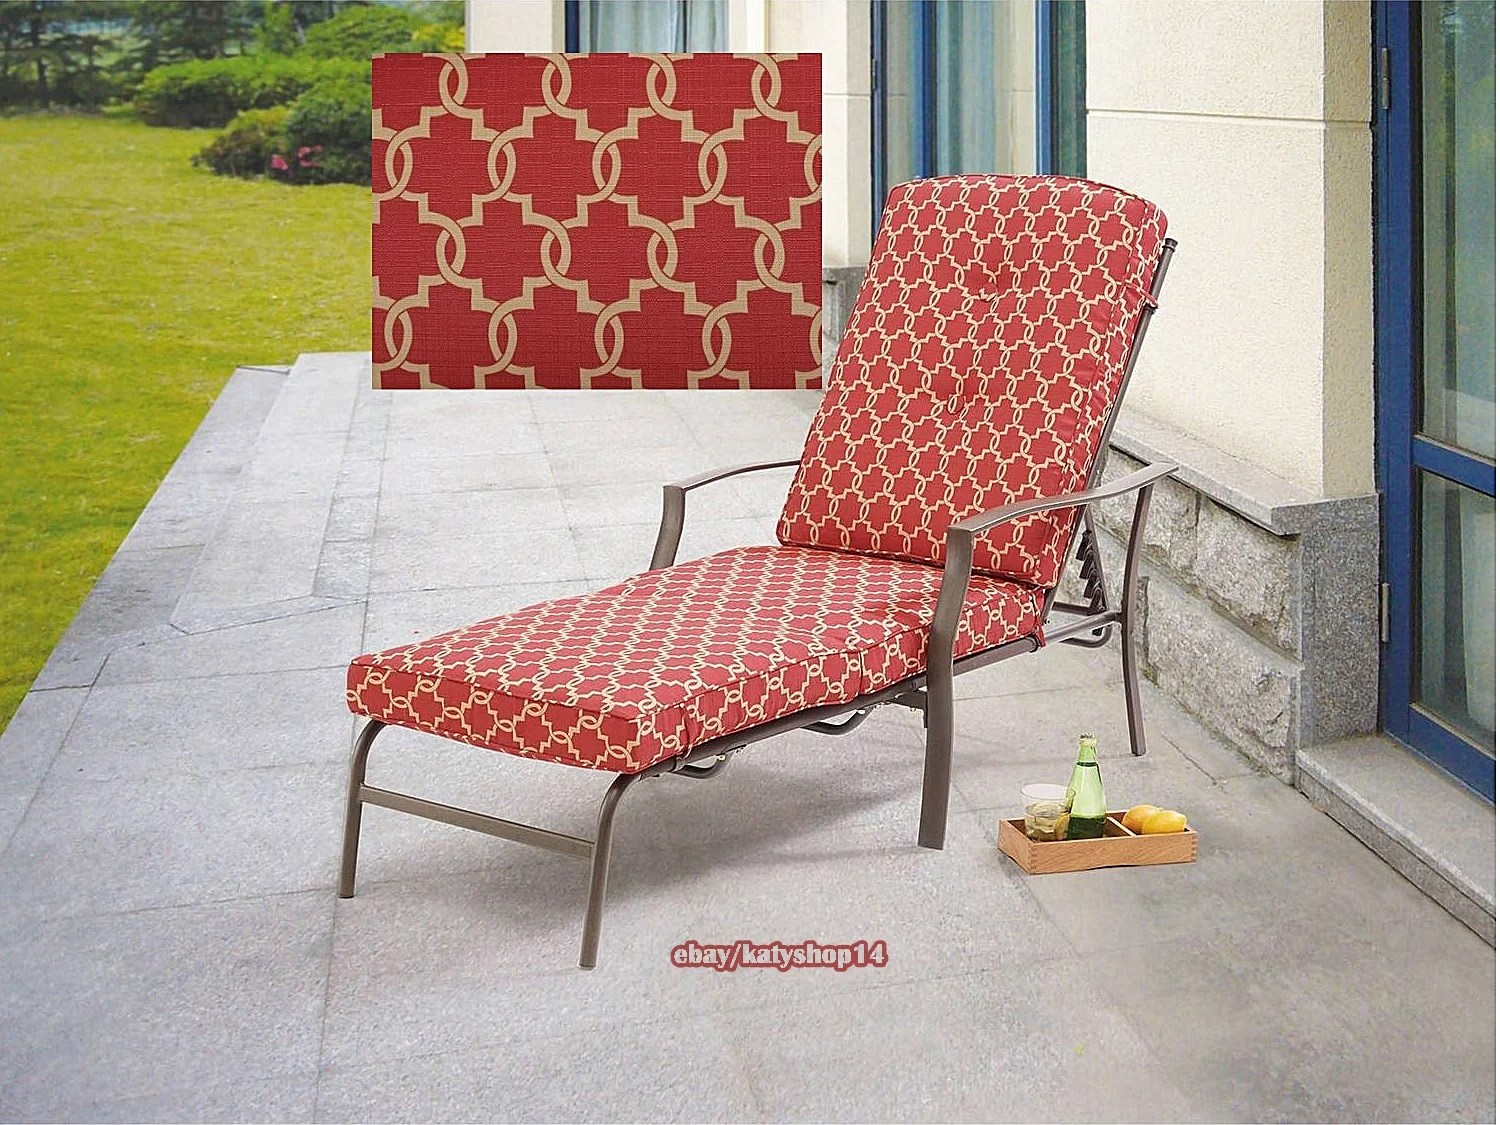 Patio Chaise Lounge Outdoor Relax Chair Adjustable